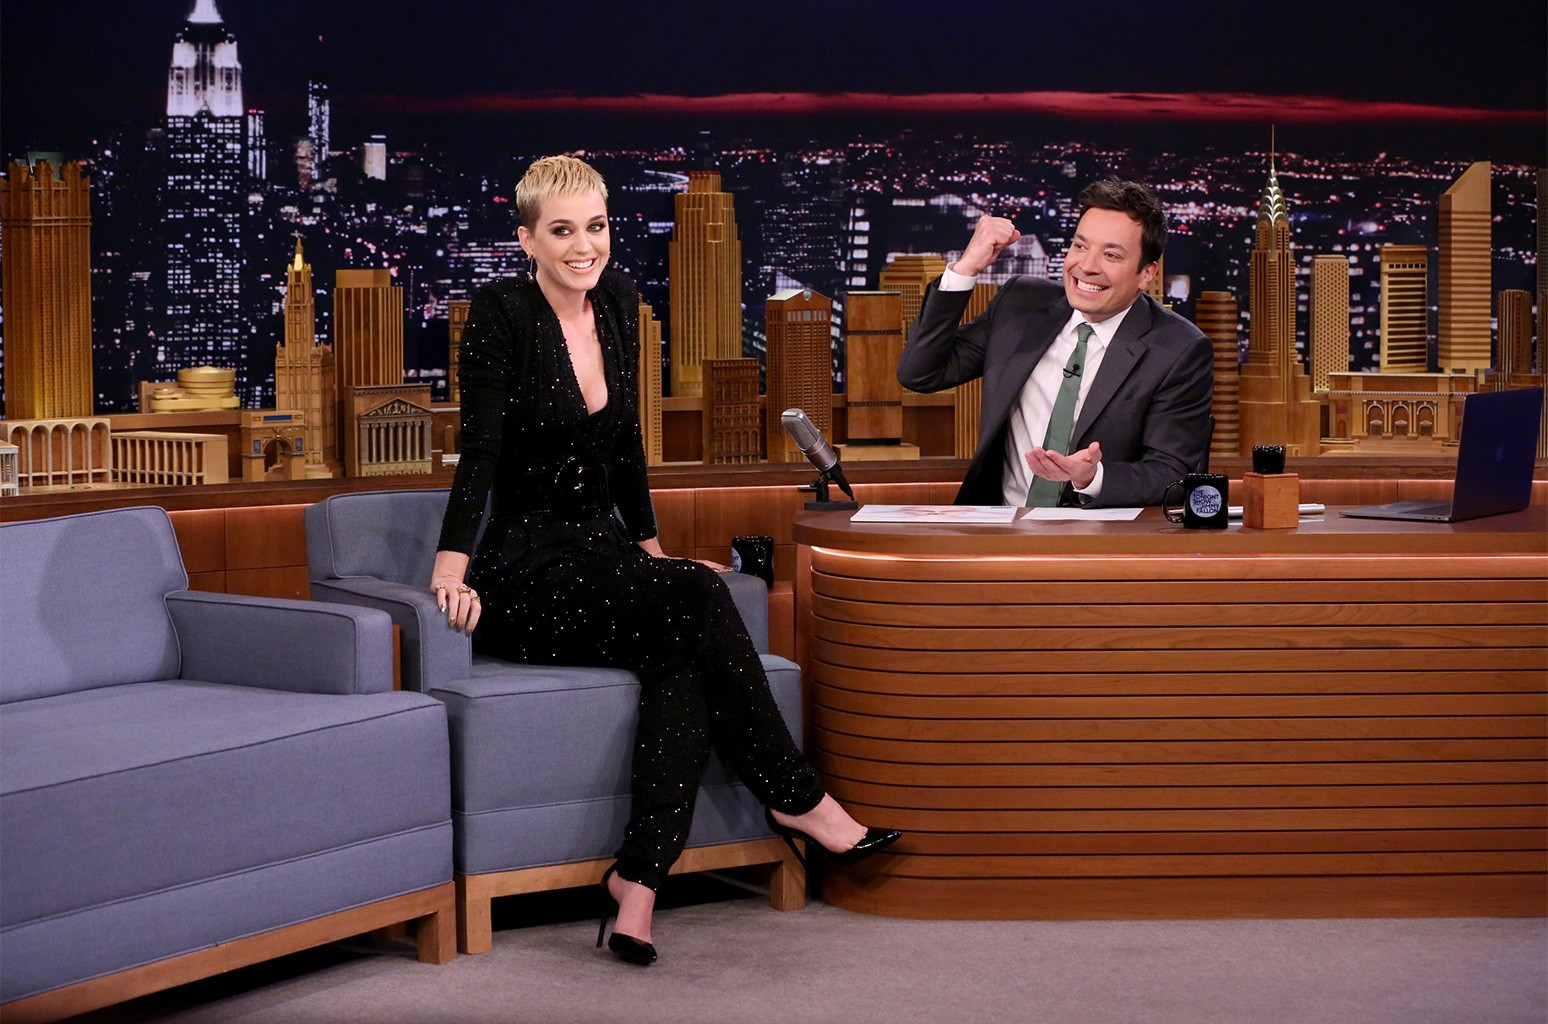 Katy Perry during interview with host Jimmy Fallon on The Tonight Show Starring Jimmy Fallon on May 19, 2017.